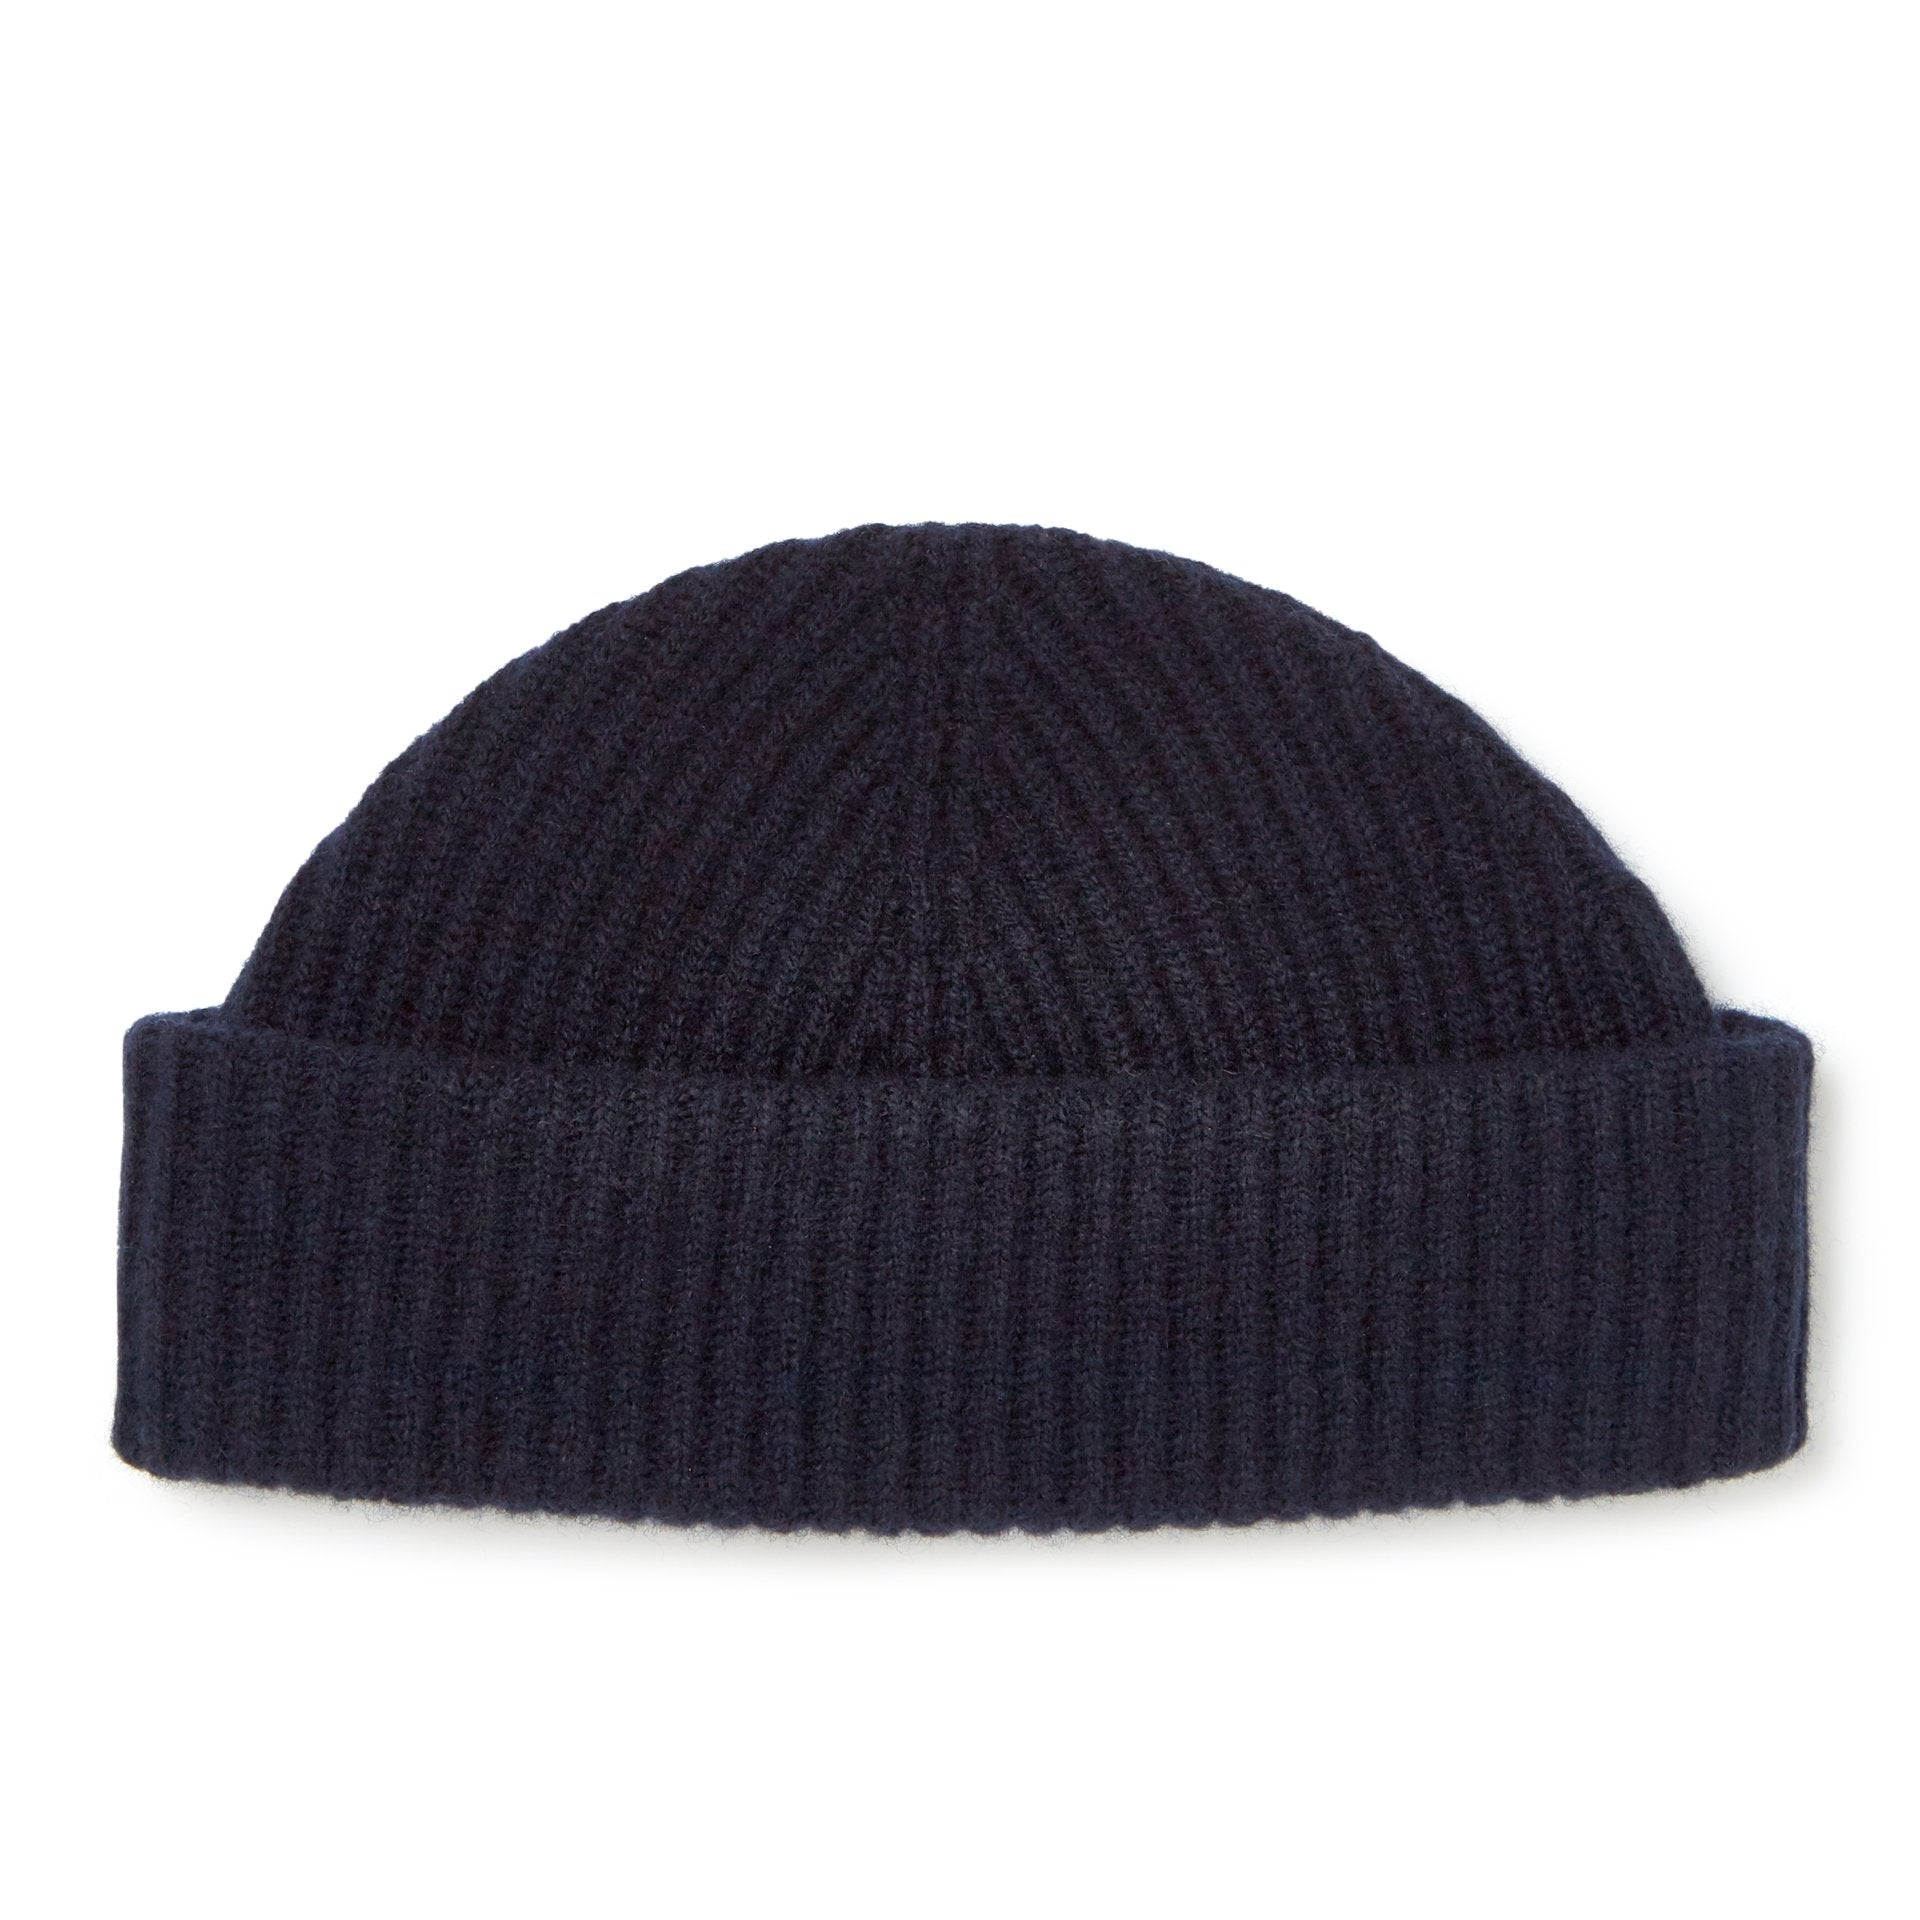 Peterhead beanie - Beanies - Lock & Co. Hatters London UK